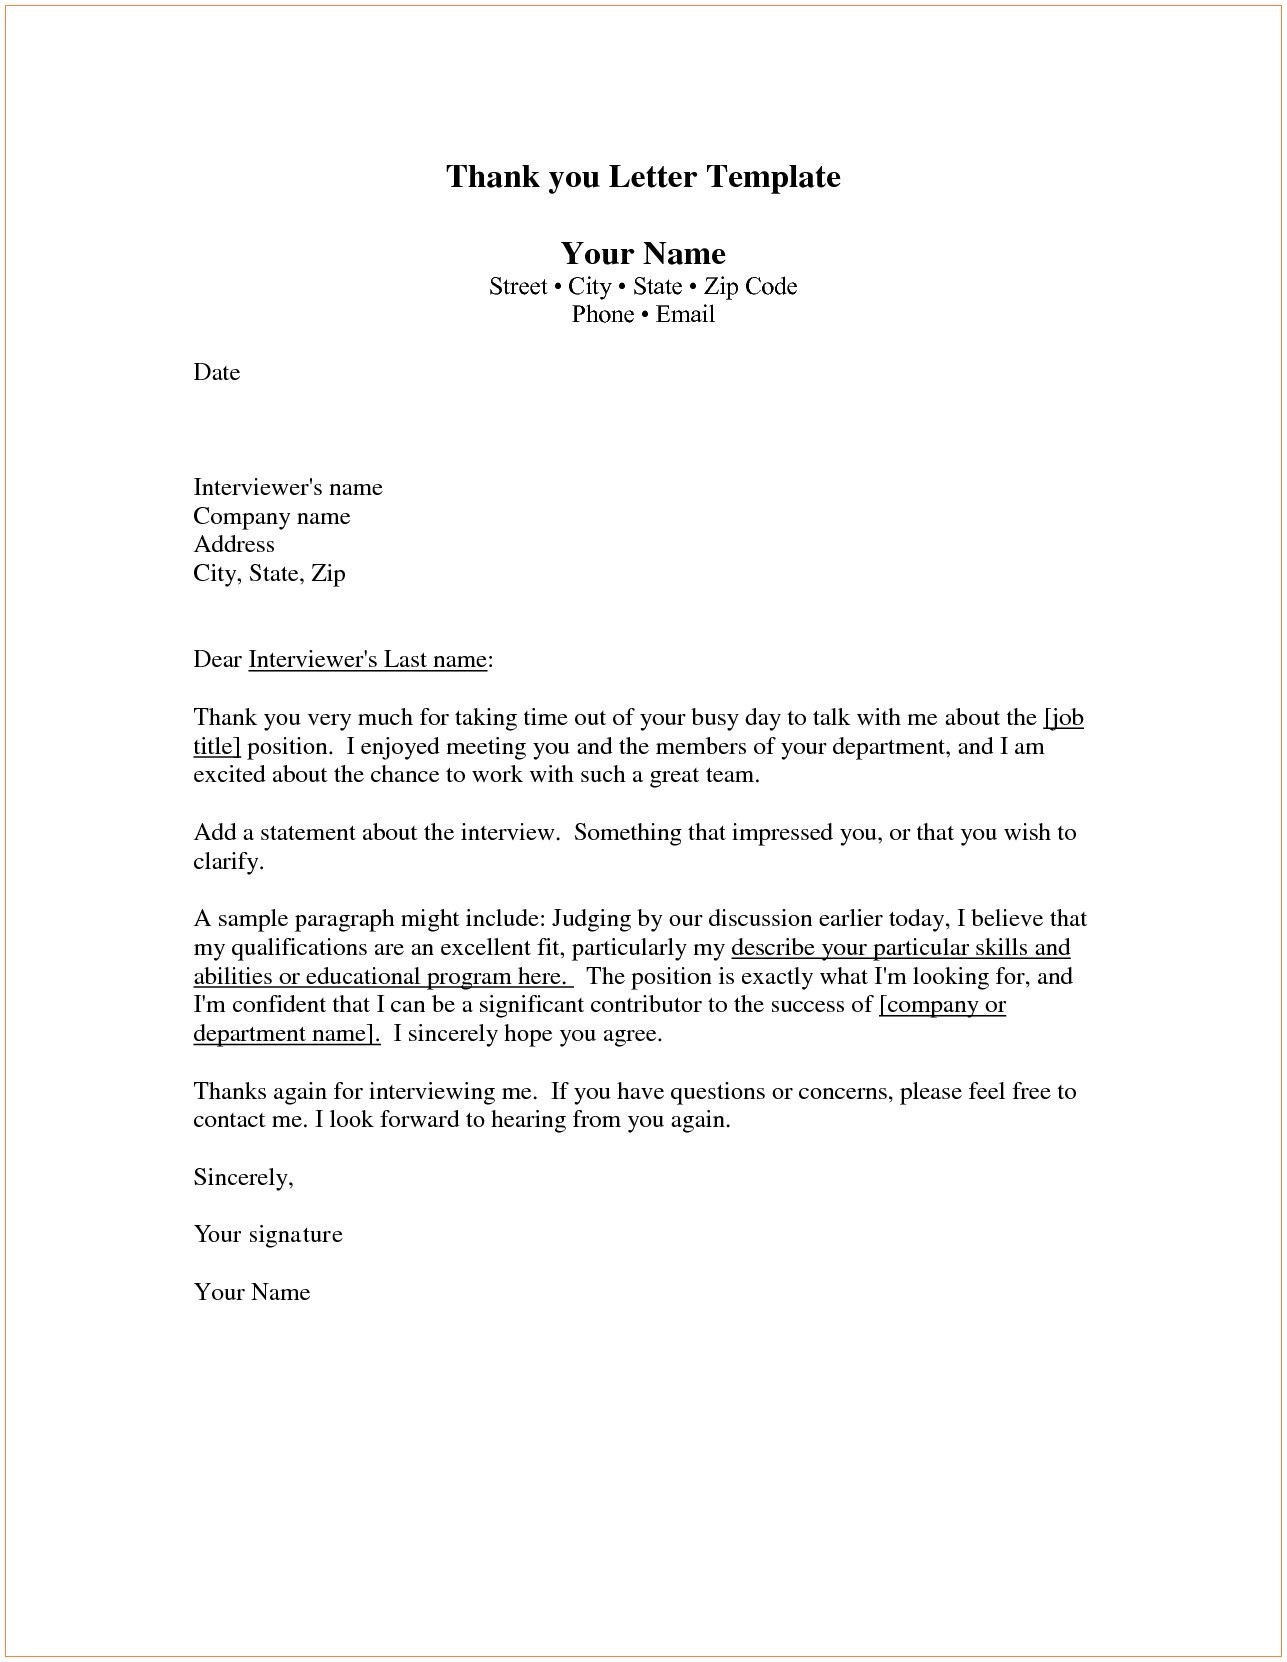 Interview Thank You Letter Template - Thank You Letters for Job Interviews Save Http Jobsearch About Od